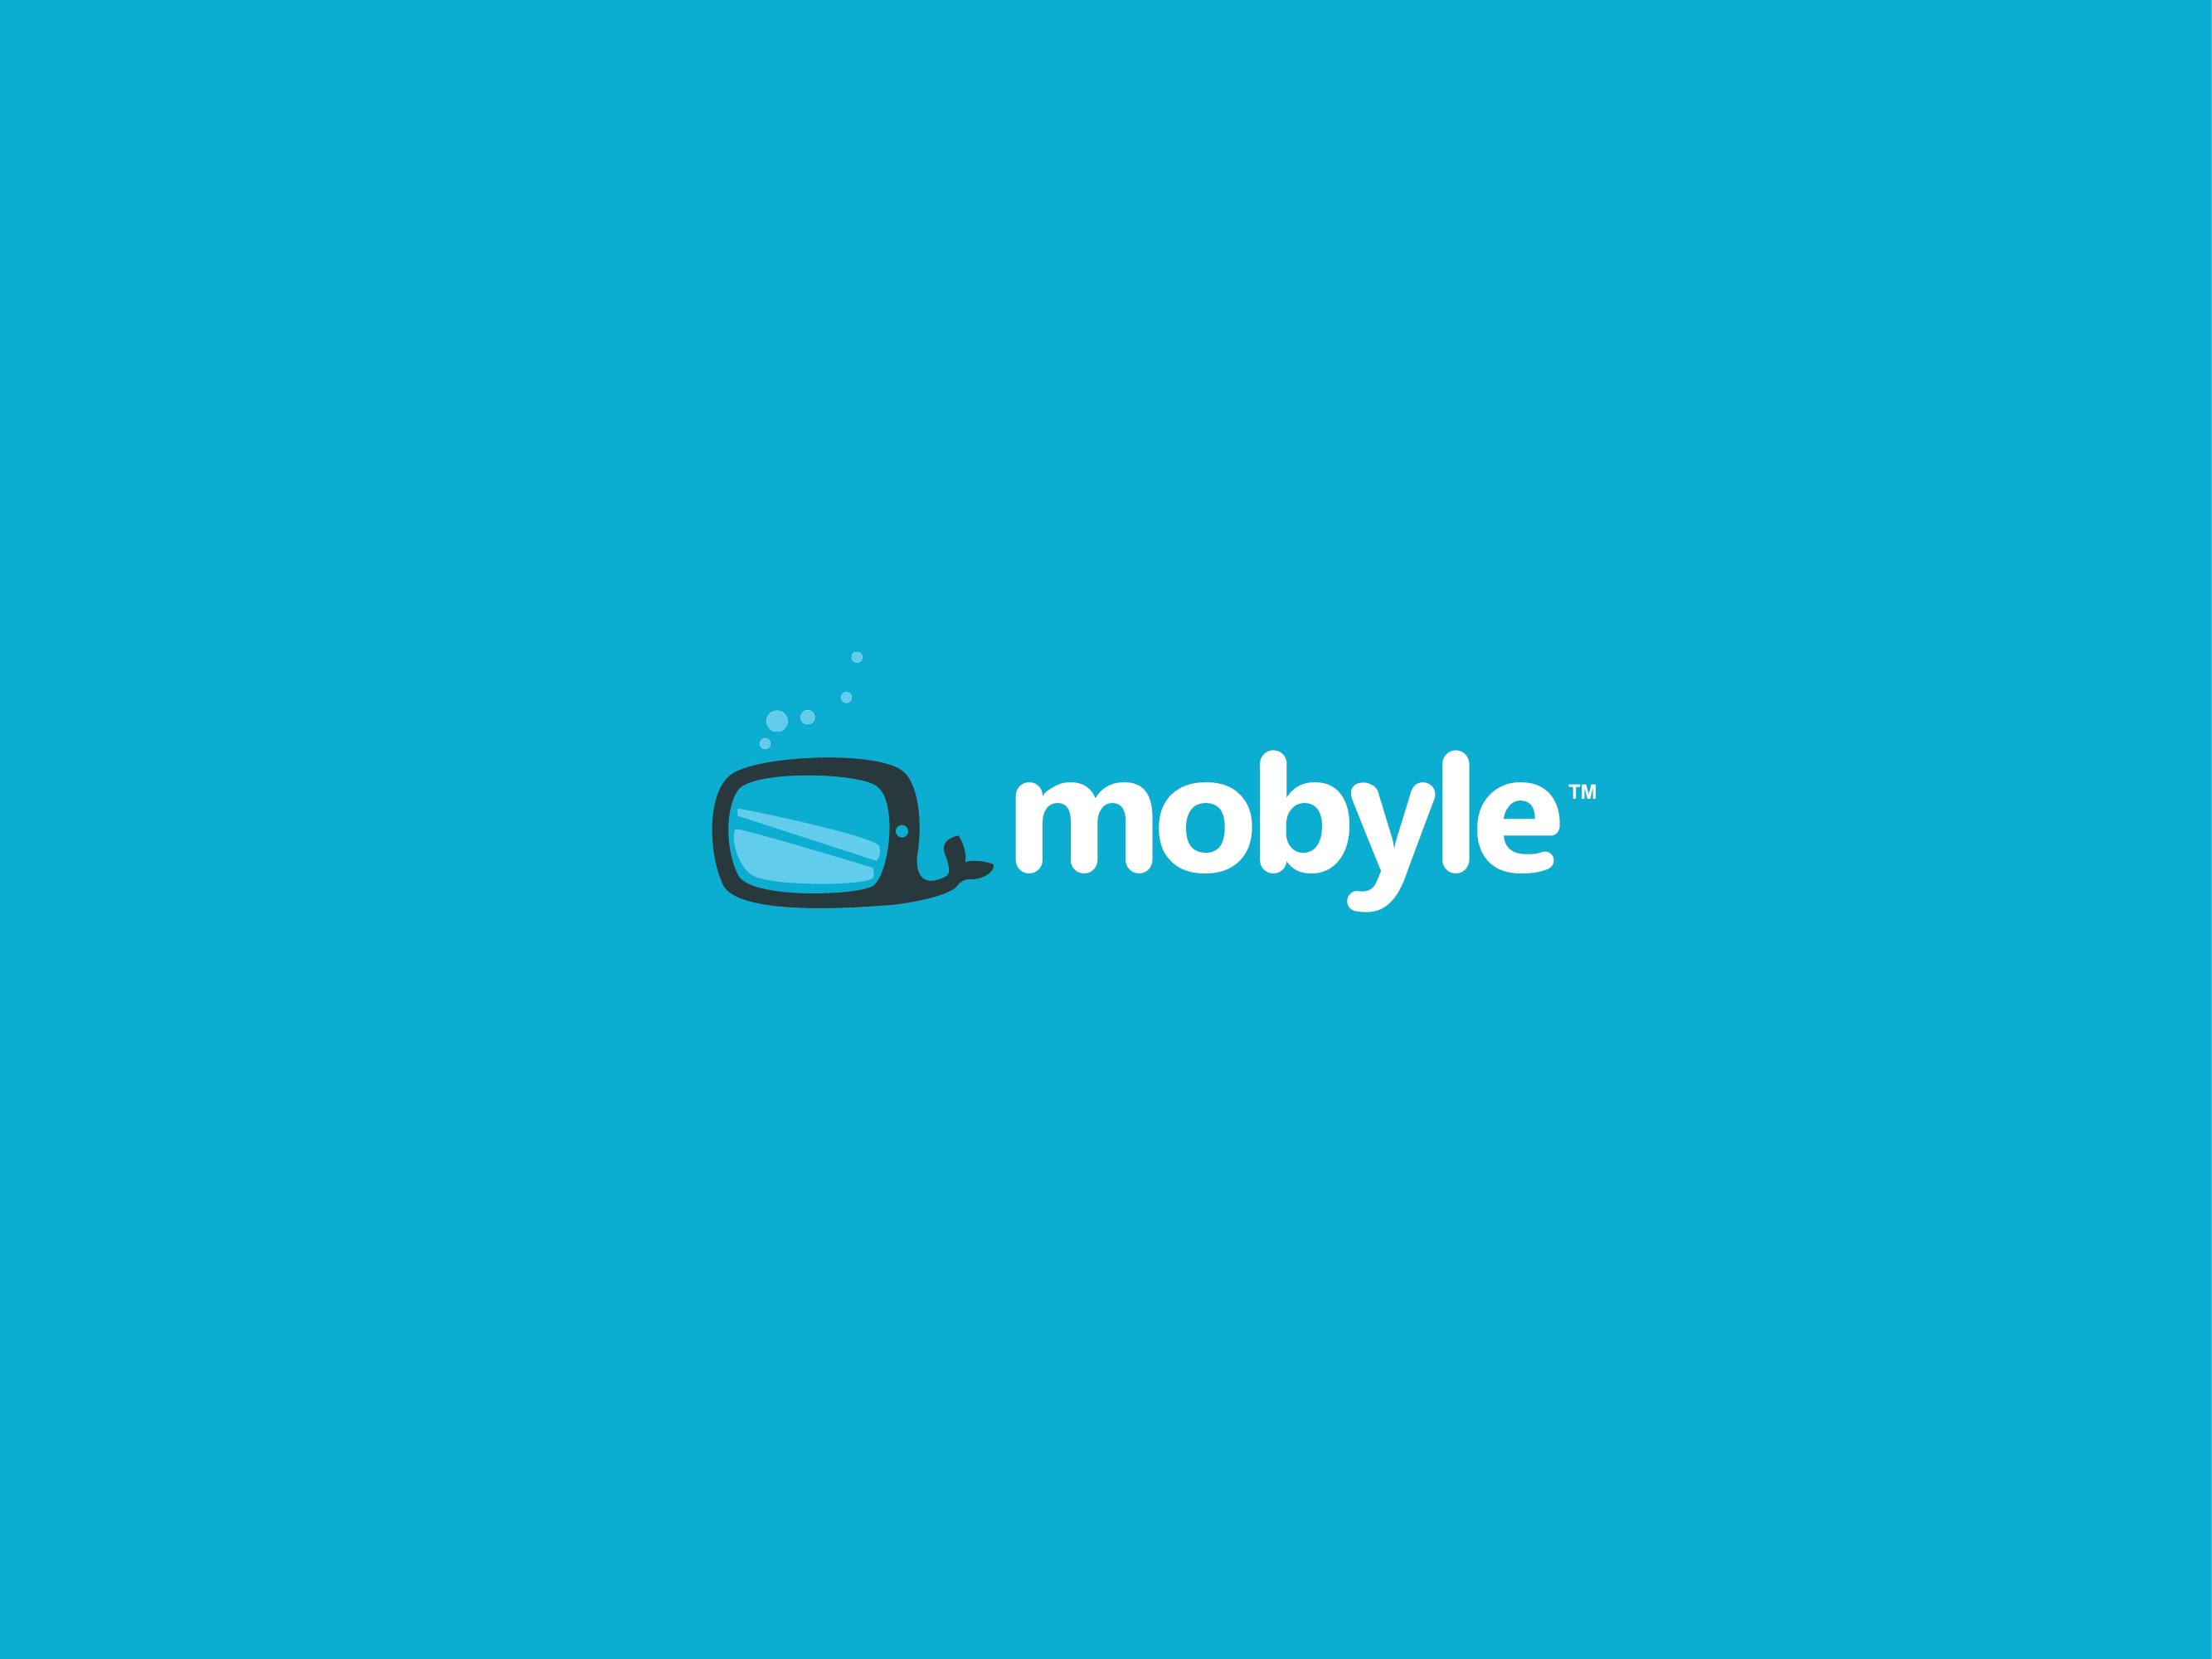 Mobyle_1_TM